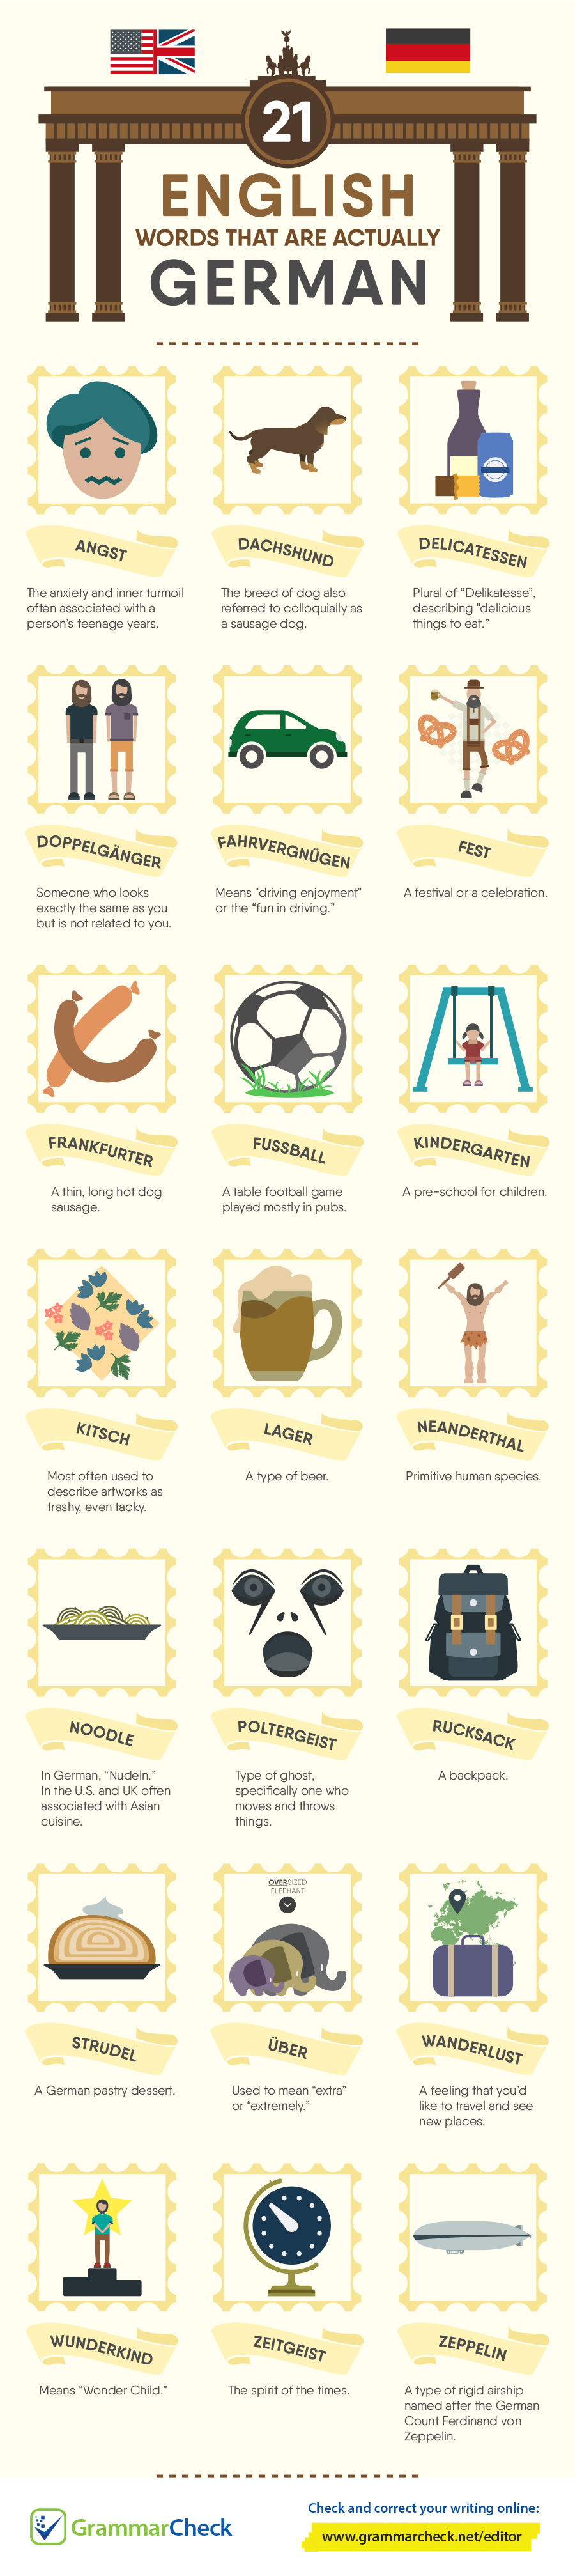 20 English Words That Are Actually German Infographic